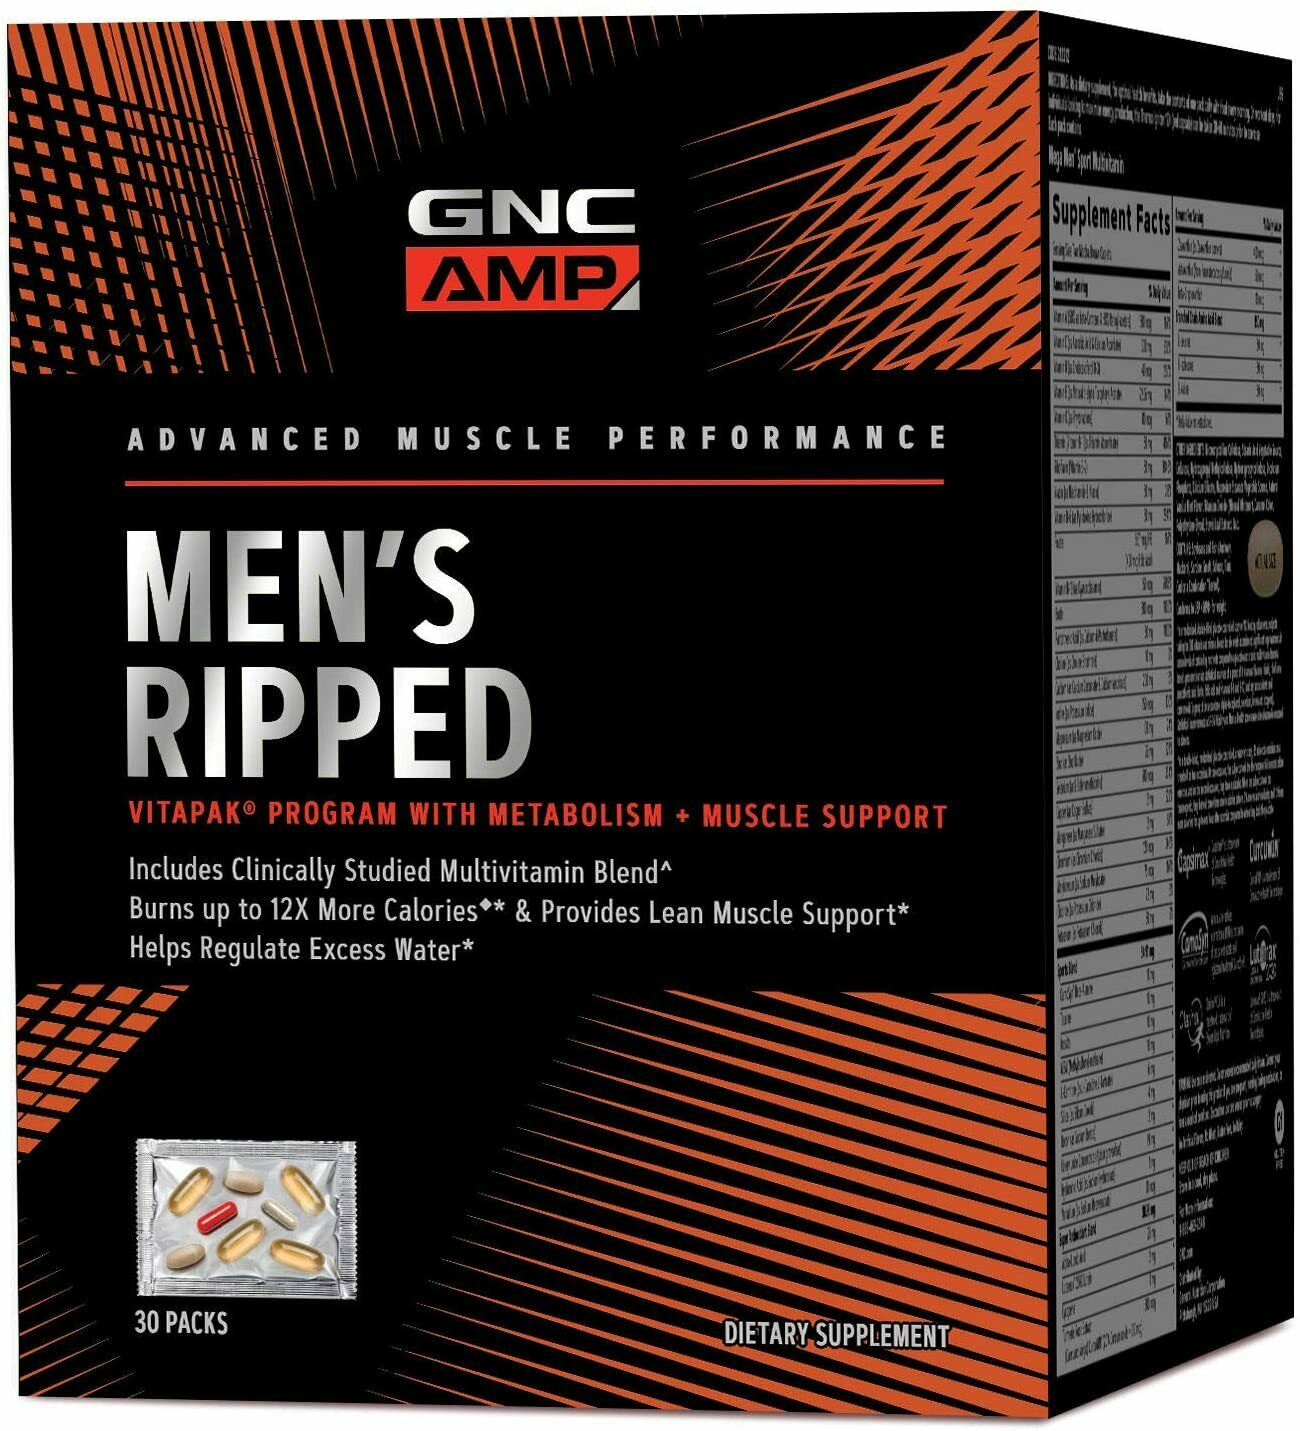 GNC AMP Mens Ripped Vitapak Program with Metabolism andMuscle Support  FREE SHIP